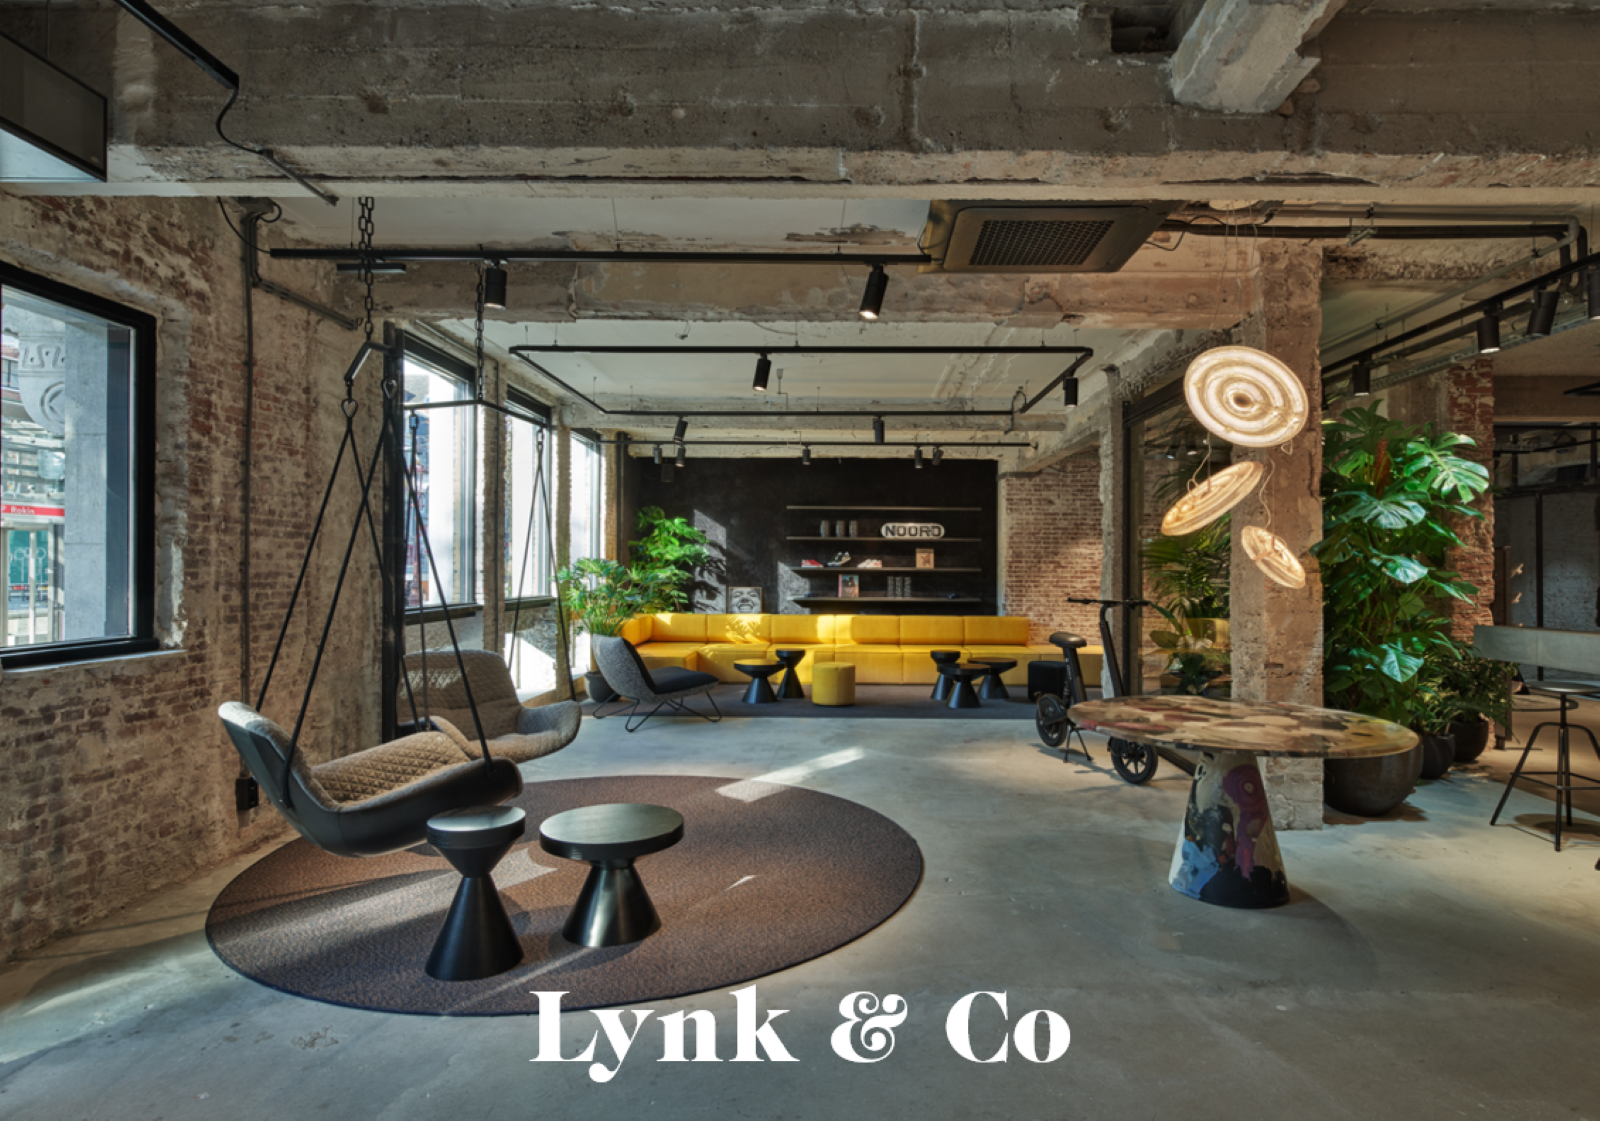 Lynk & co innovation tour missions mmm 0